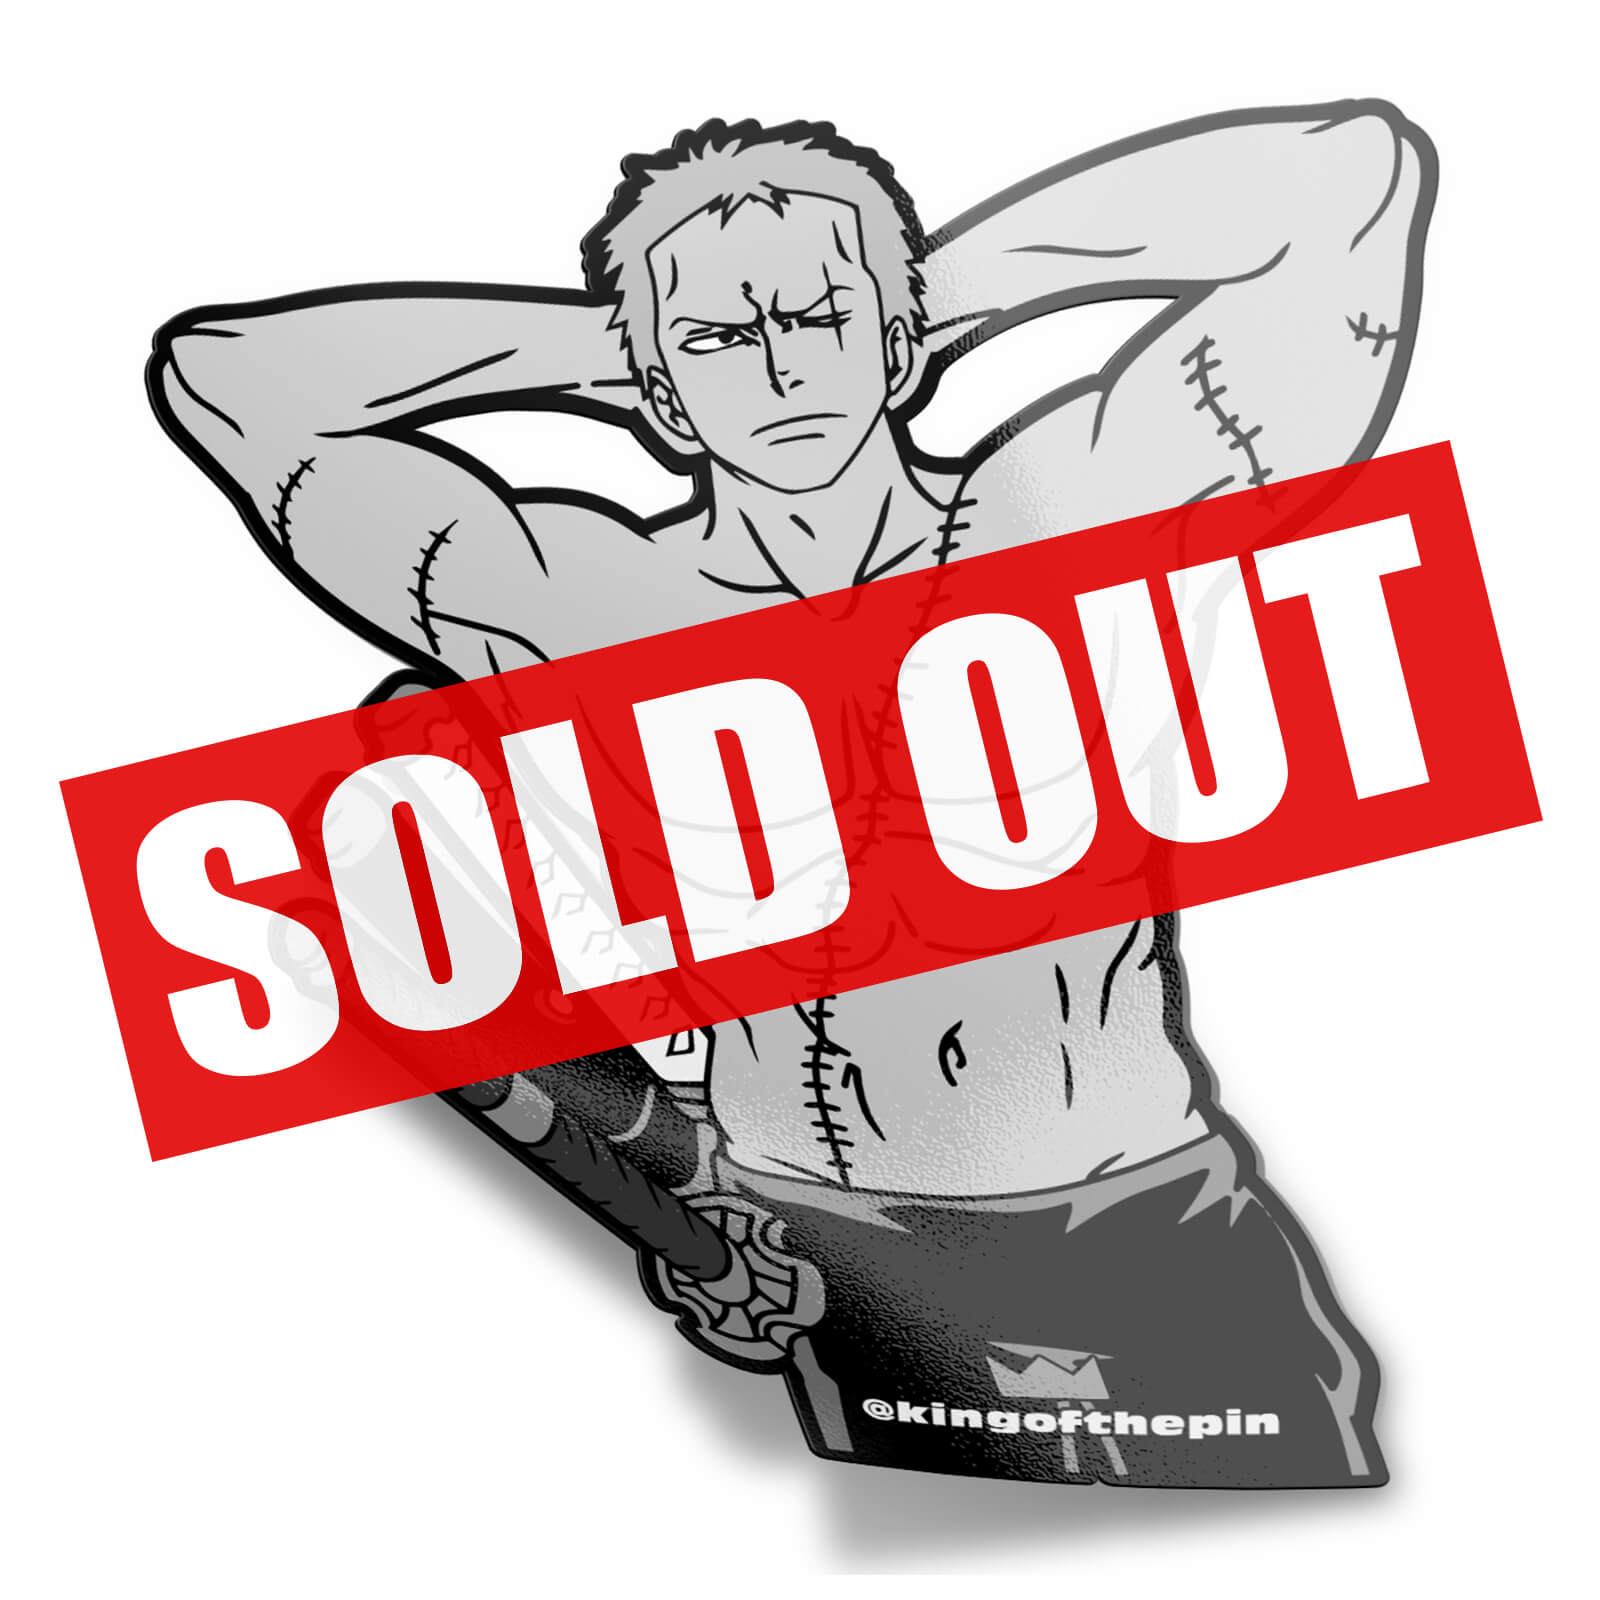 Roronoa Zoro (Shirtless Hero) Sticker